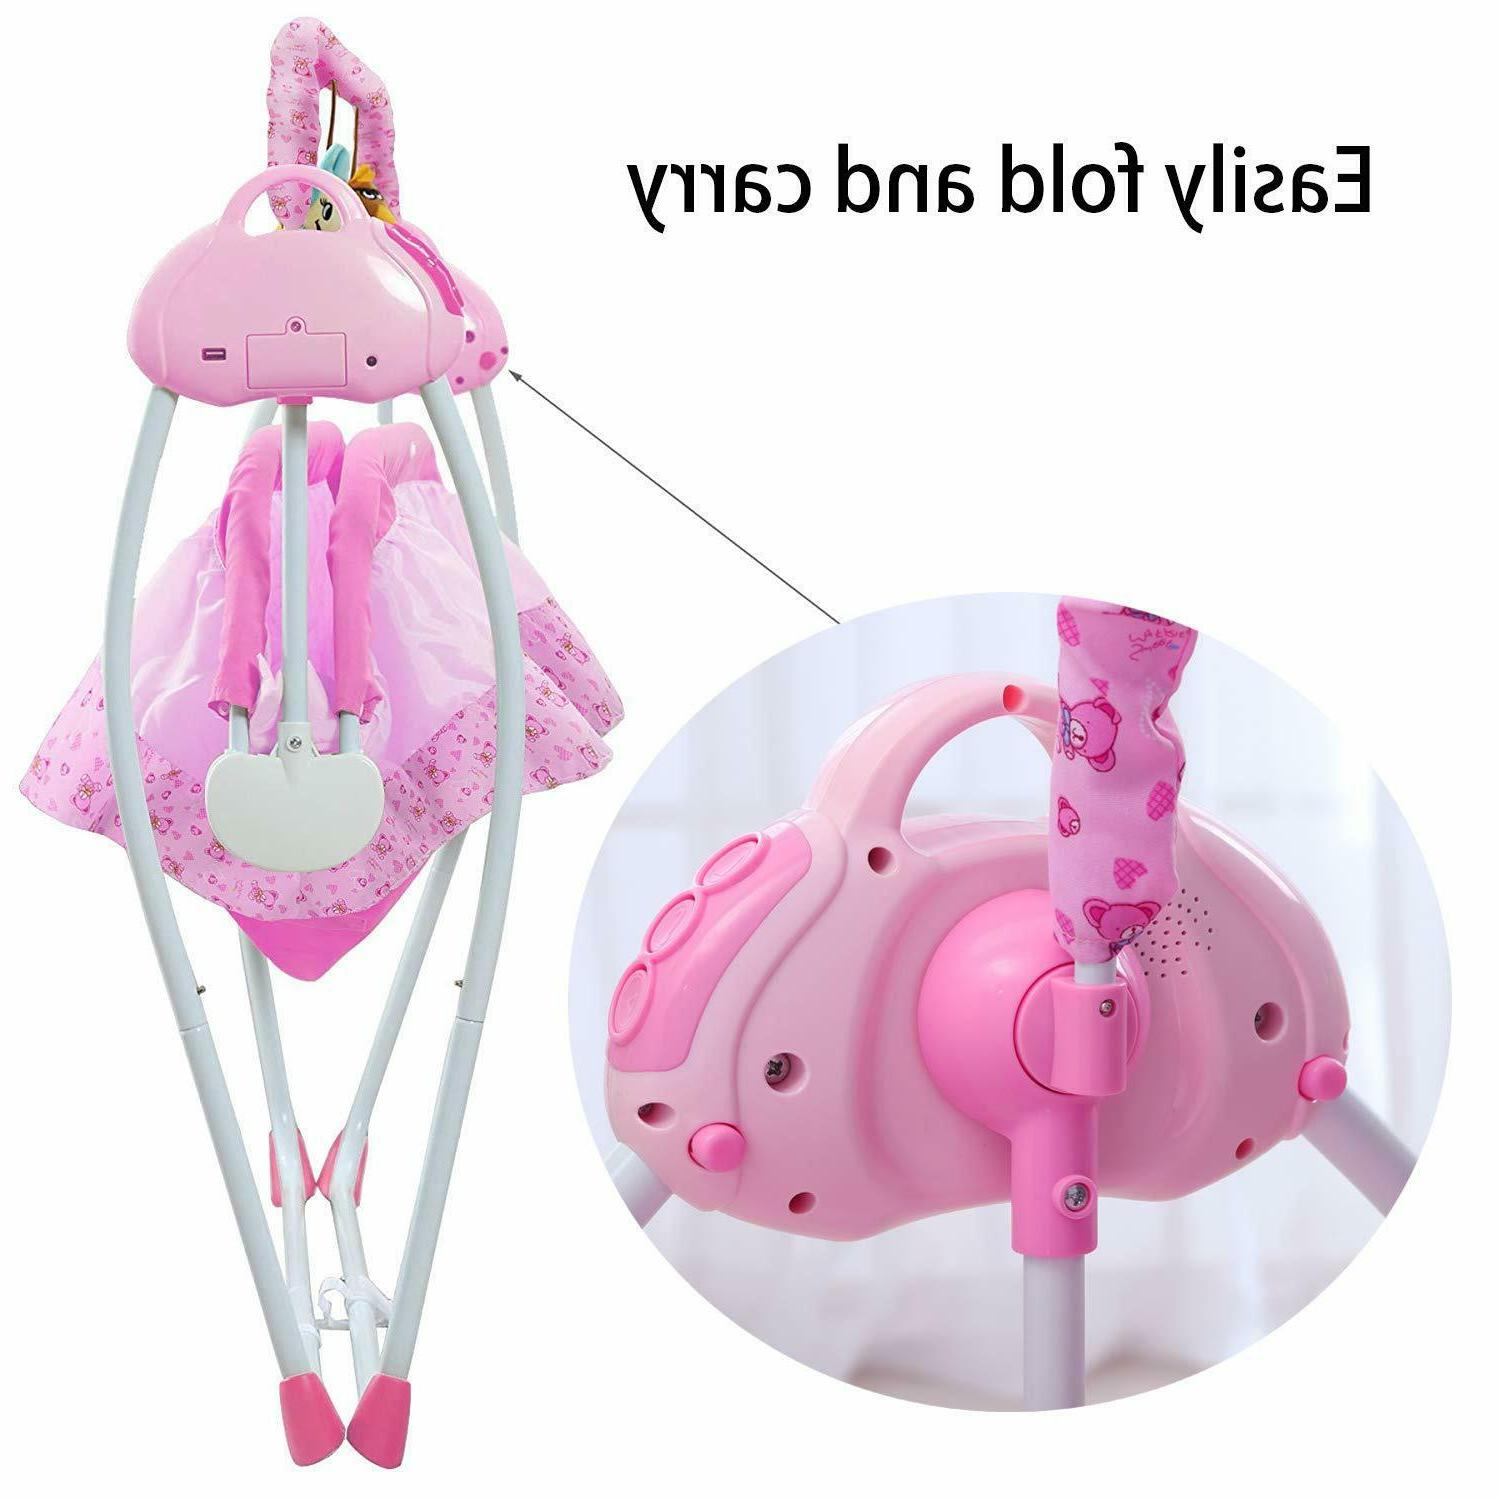 Baby Cradle Baby Bassinets Swing for Baby Boy Girl w/ Music